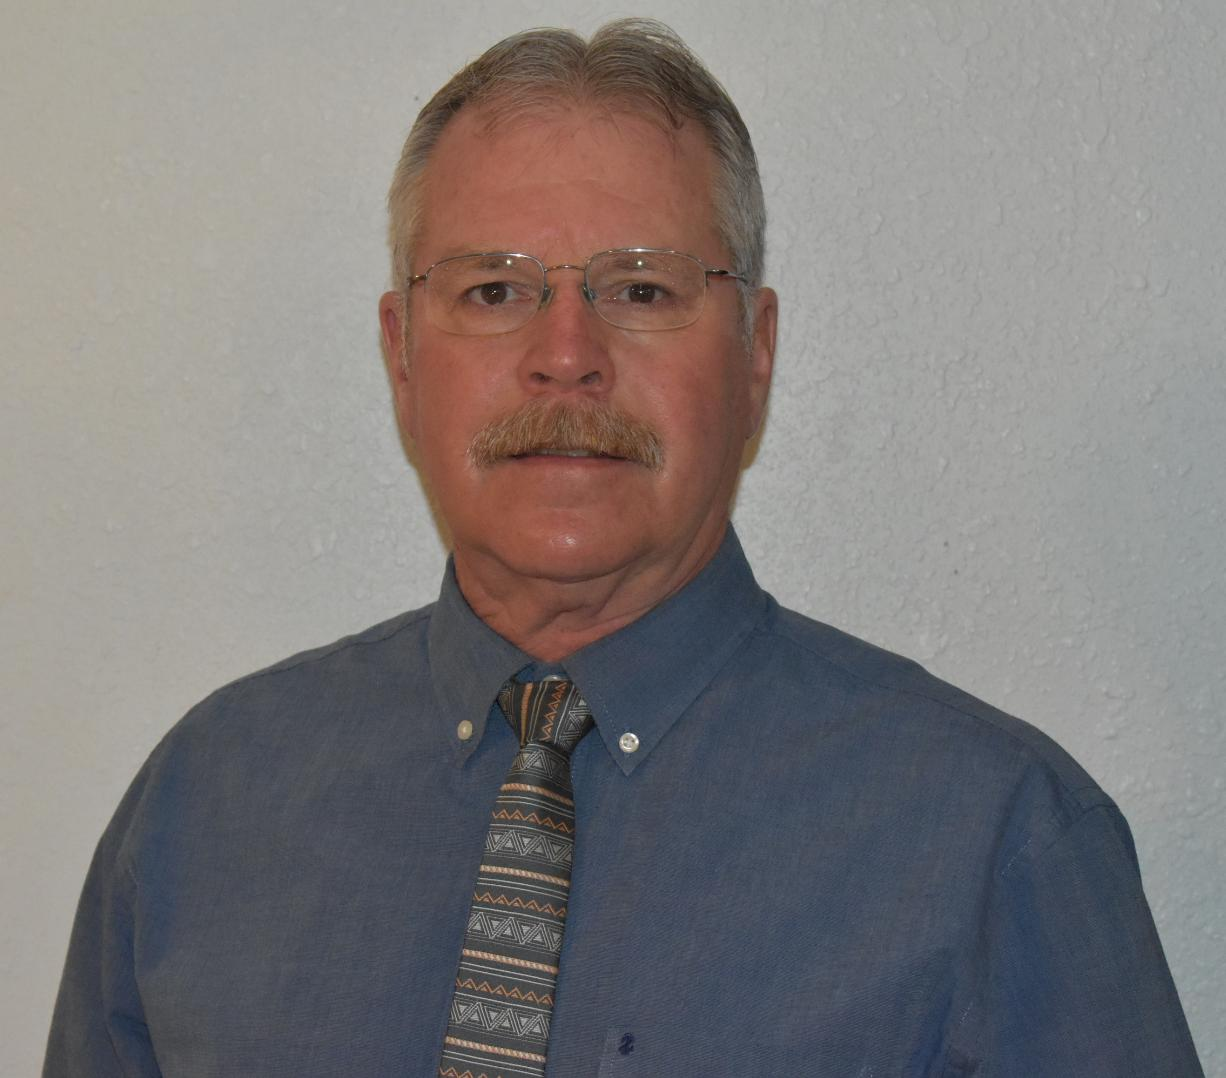 Bondsman Kent Stephens works for the most Trusted Bonding Company in Logan, Utah